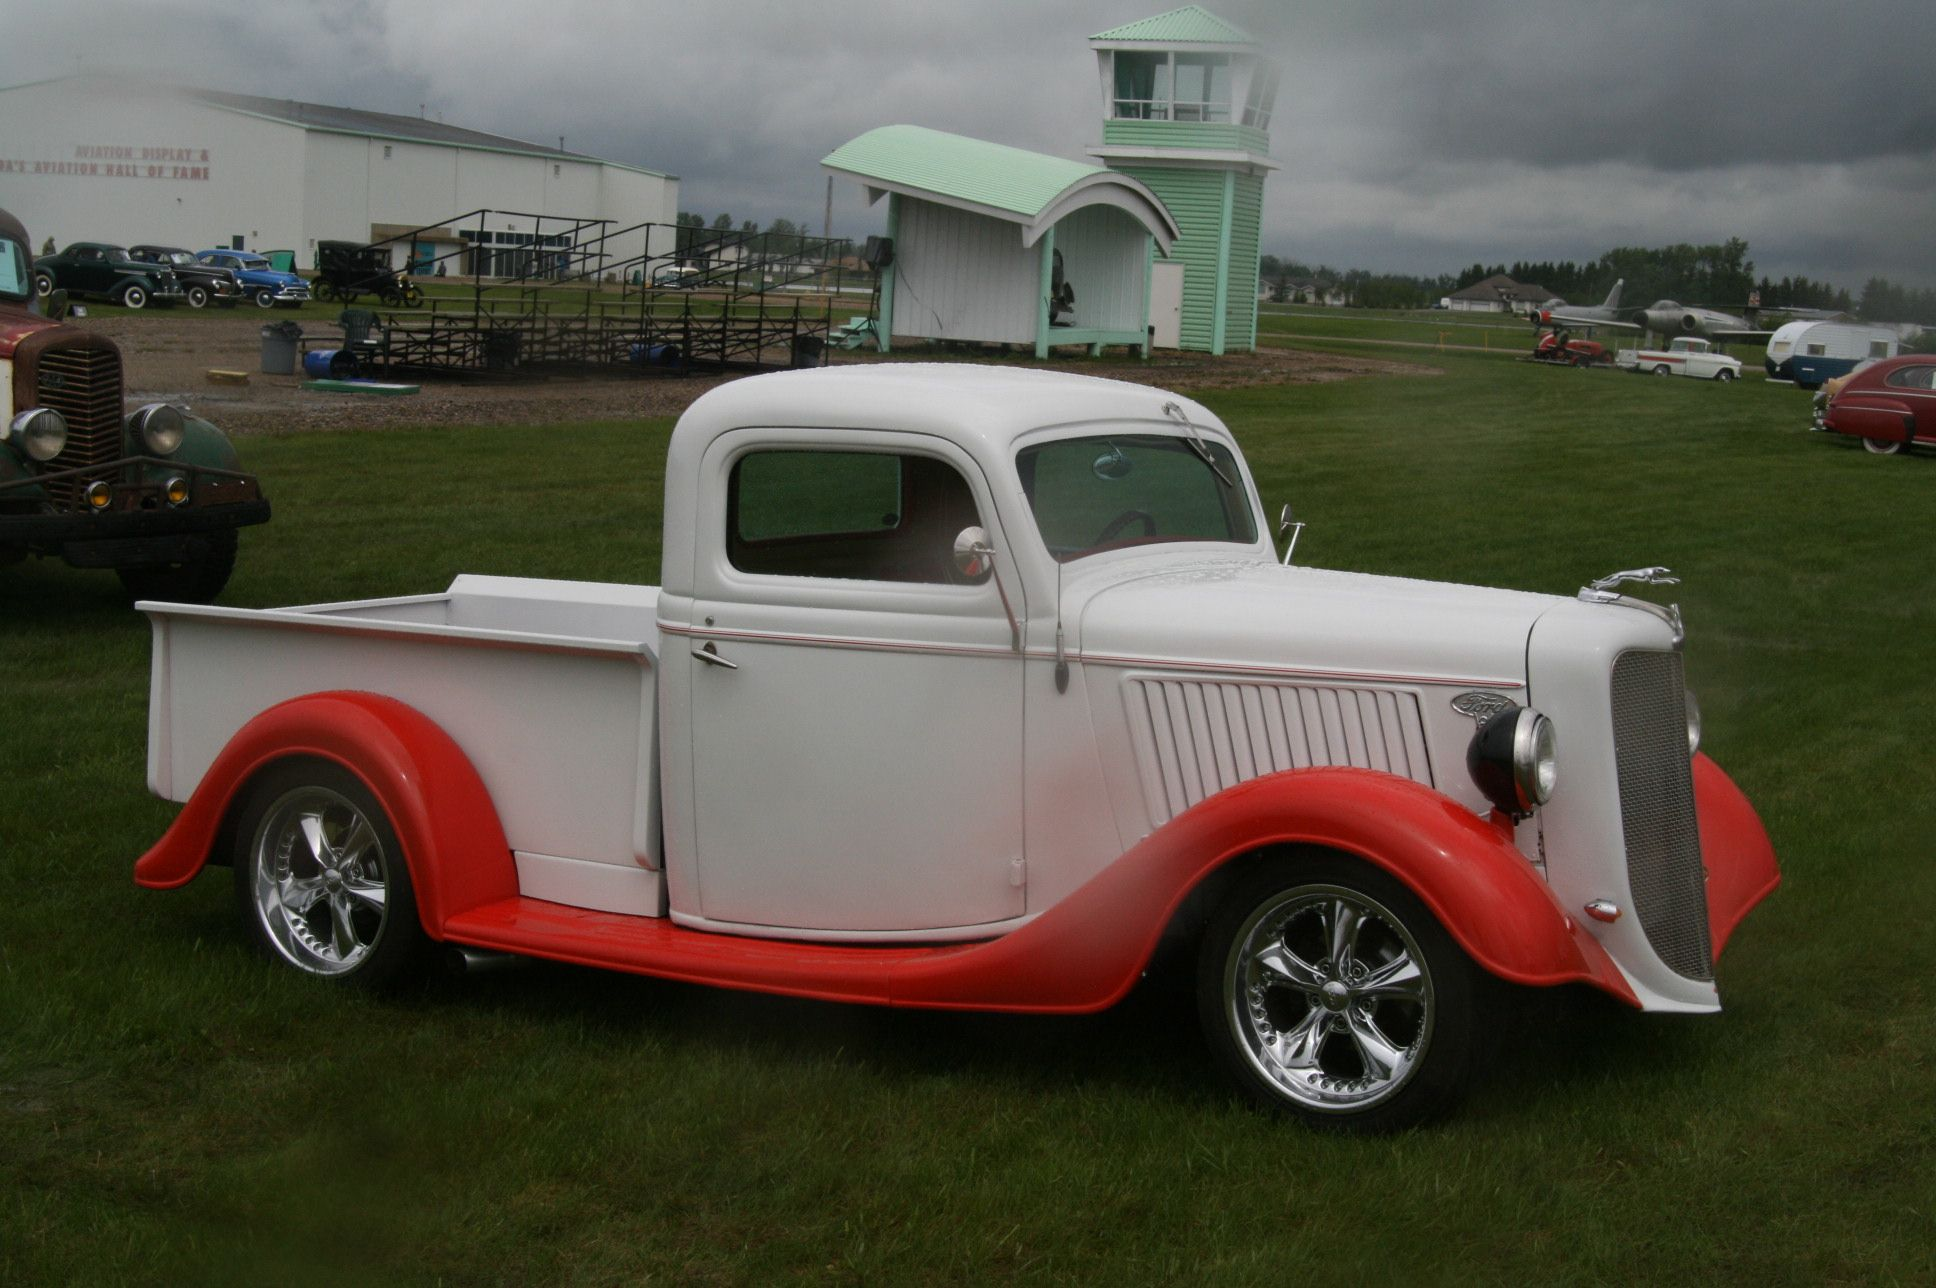 ◆1936 Ford Pick-Up Truck◆...Re-pin brought to you by agents at #HouseofInsurance #Eugene, Oregon for #carinsurance.